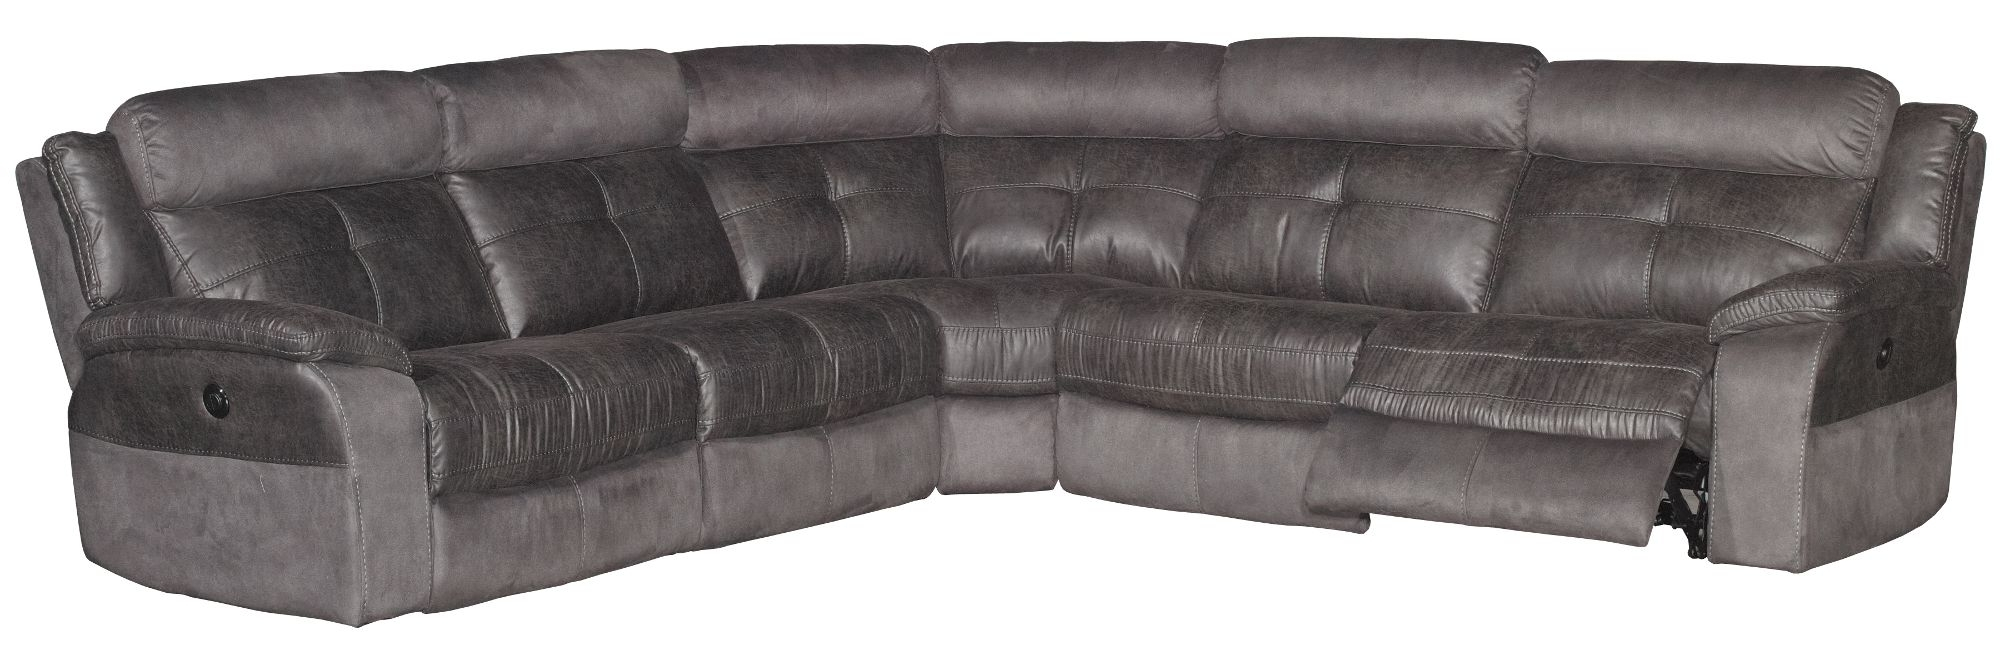 Denver Sectional Sofas In Well Known Gray Microfiber 6 Piece 3X Power Reclining Sectional – Denver (View 8 of 20)